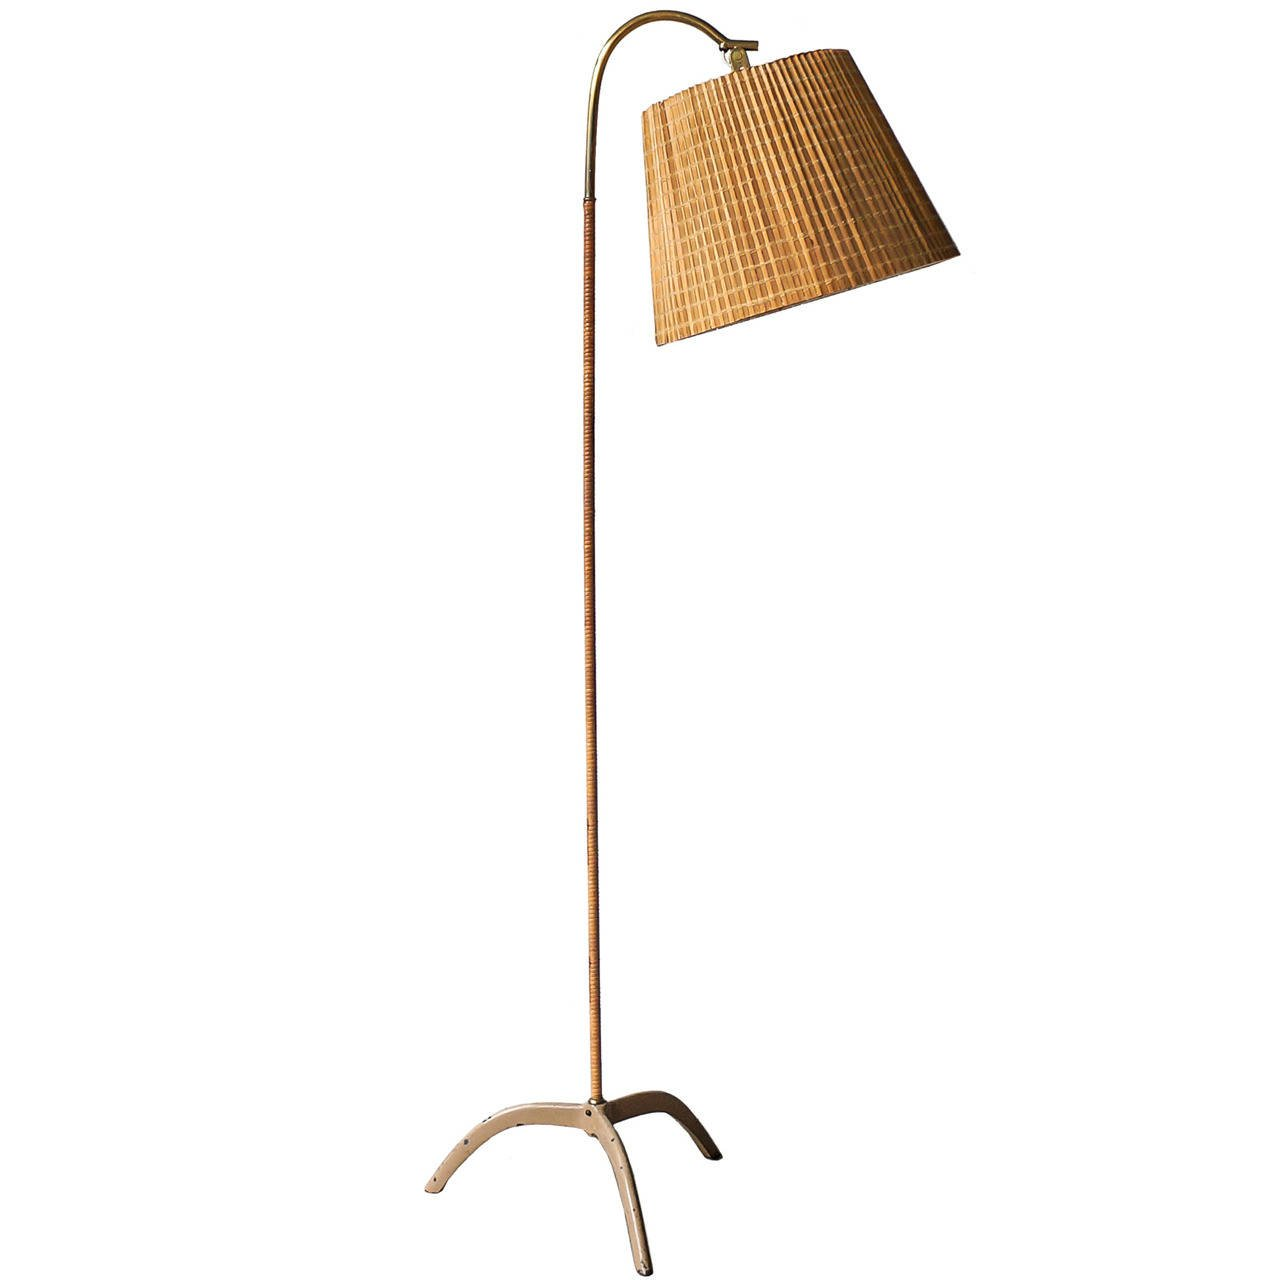 Paavo Tynell Floor Lamp, Model 9609, Taito Oy, 1940s - The Exchange Int